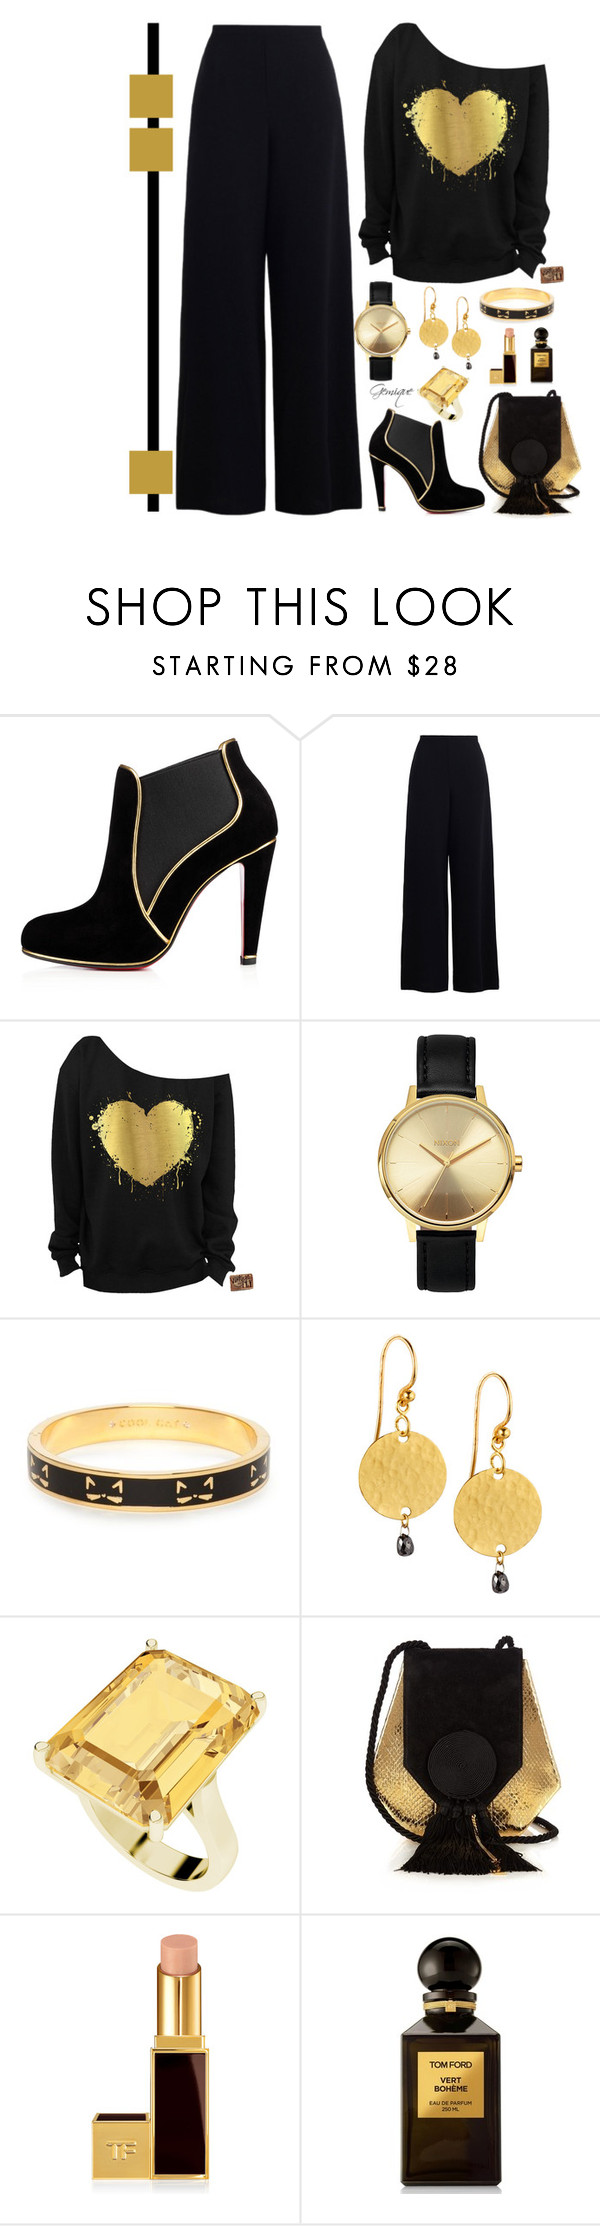 """Golden Girl"" by gemique ❤ liked on Polyvore featuring Zimmermann, Nixon, Kate Spade, Gurhan, StyleRocks, Yves Saint Laurent and Tom Ford"